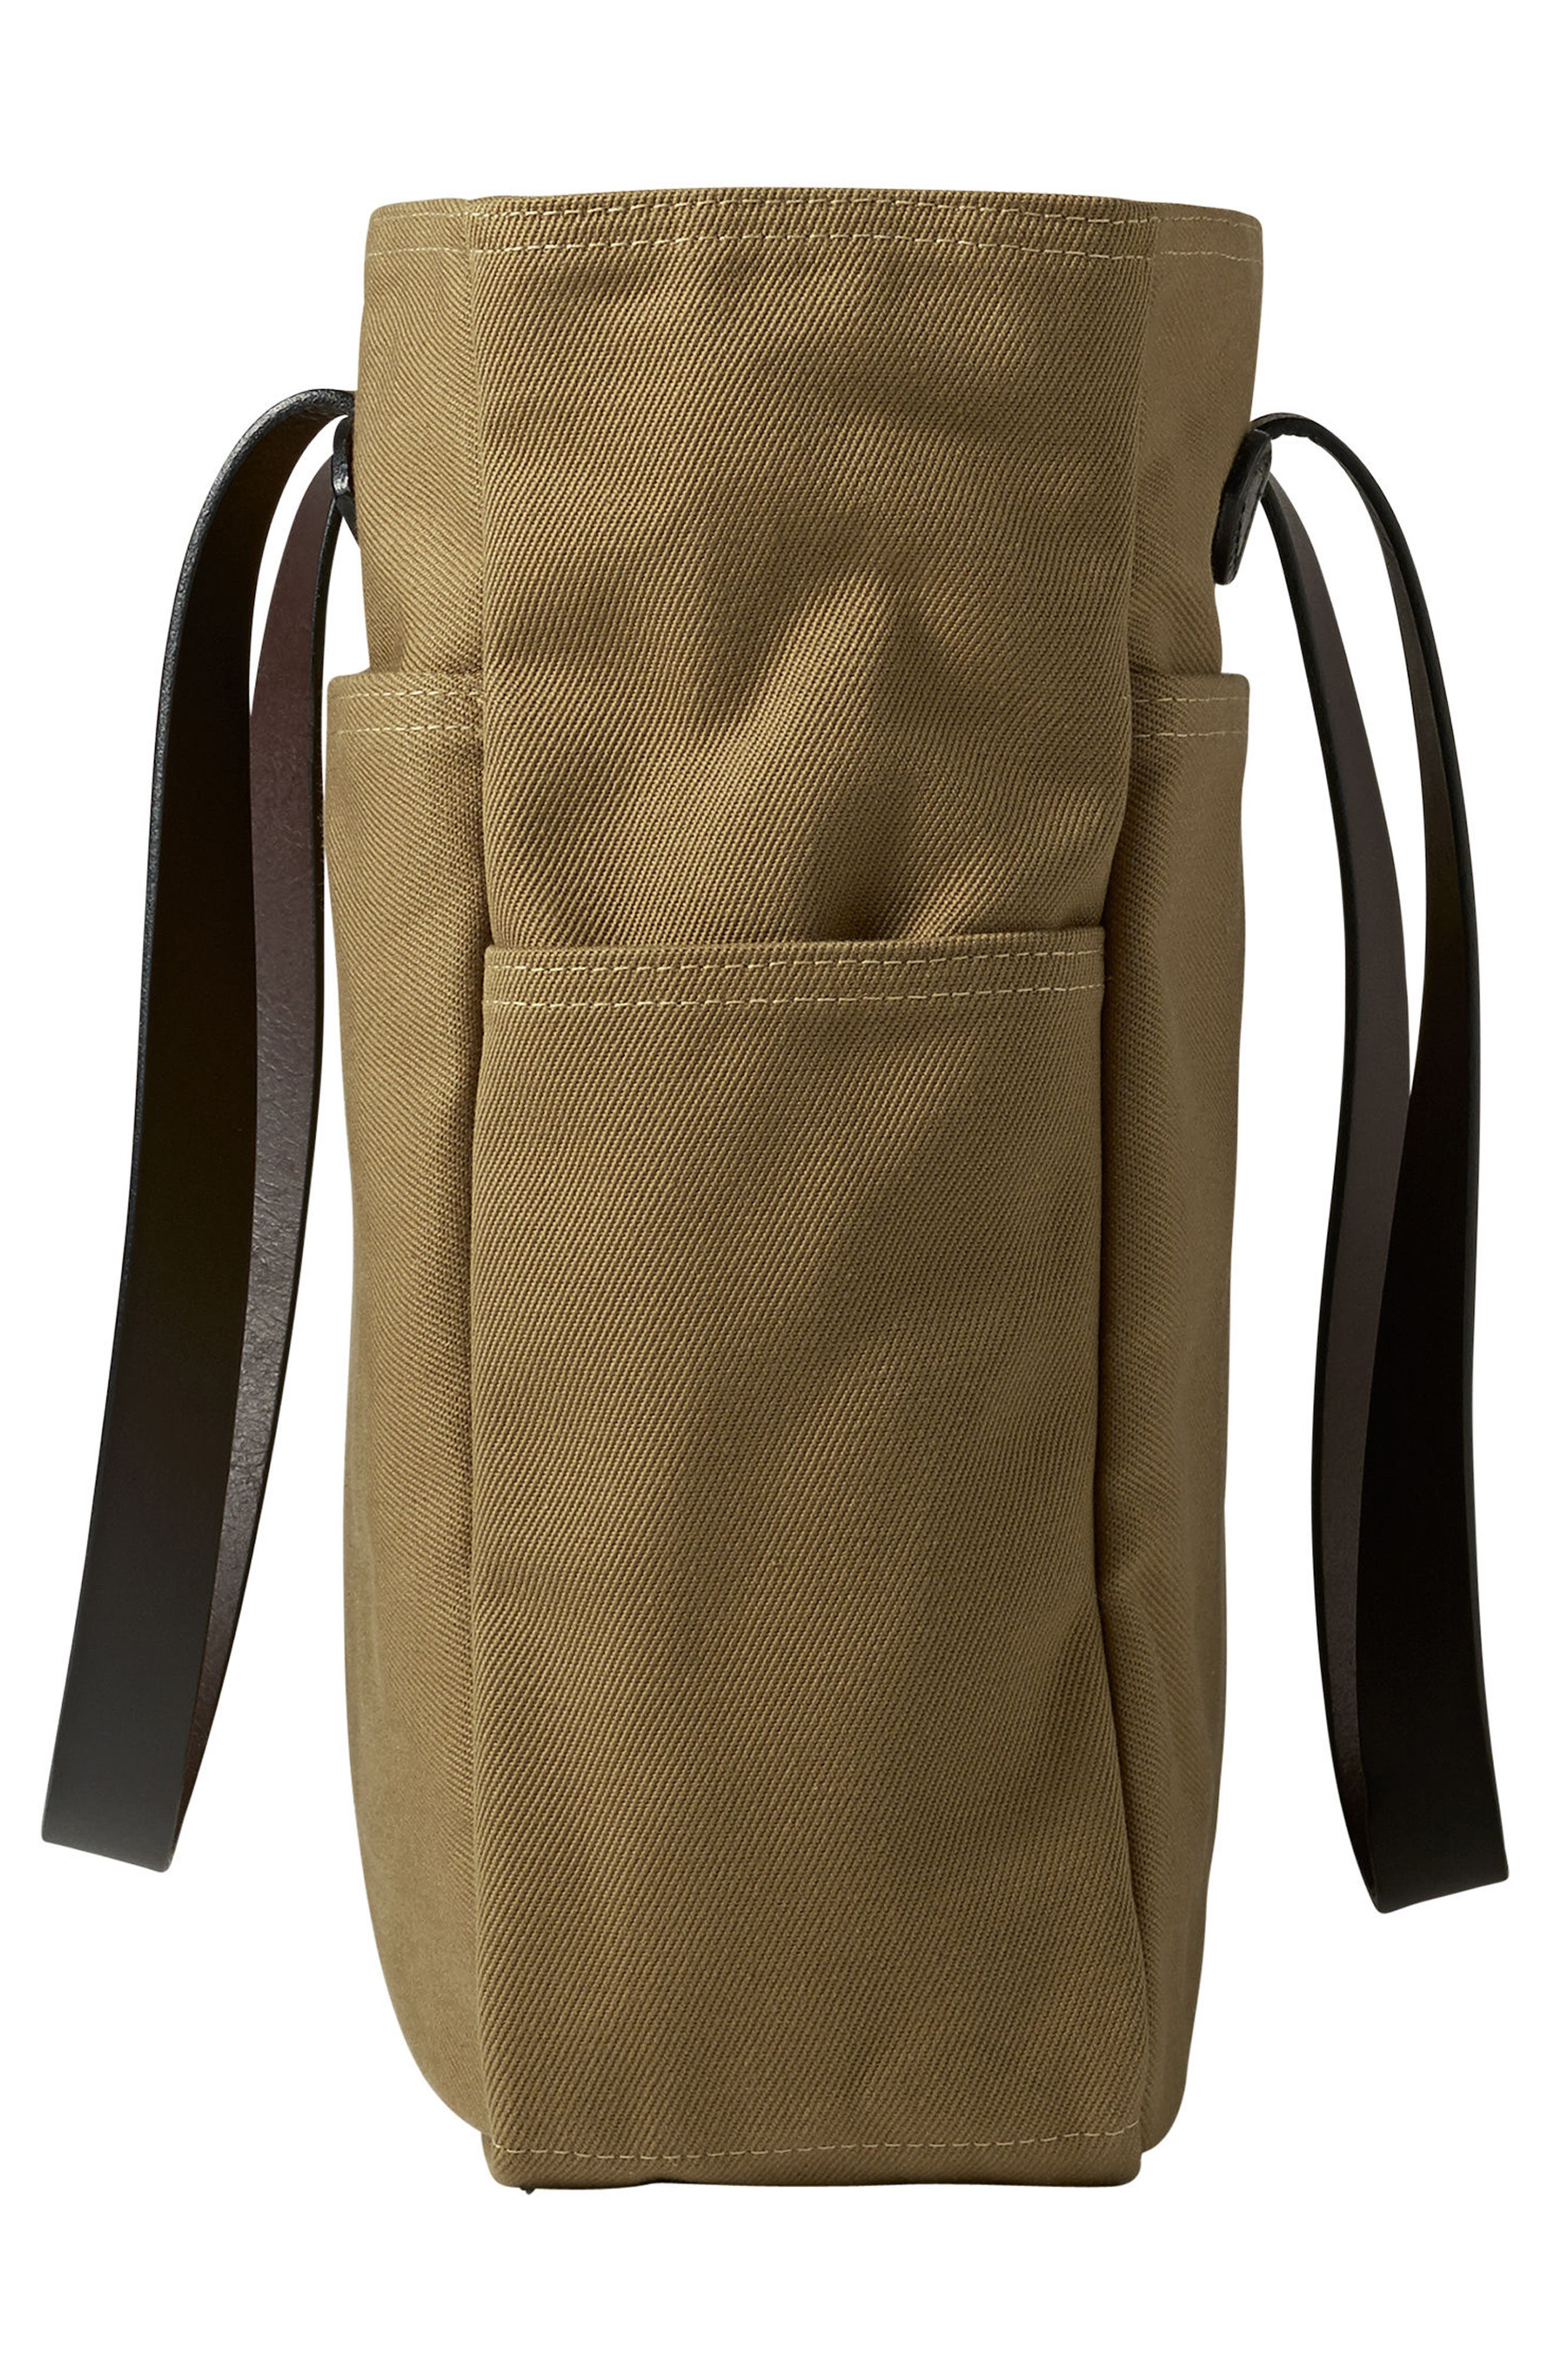 Rugged Twill Tote Bag,                             Alternate thumbnail 3, color,                             Tan